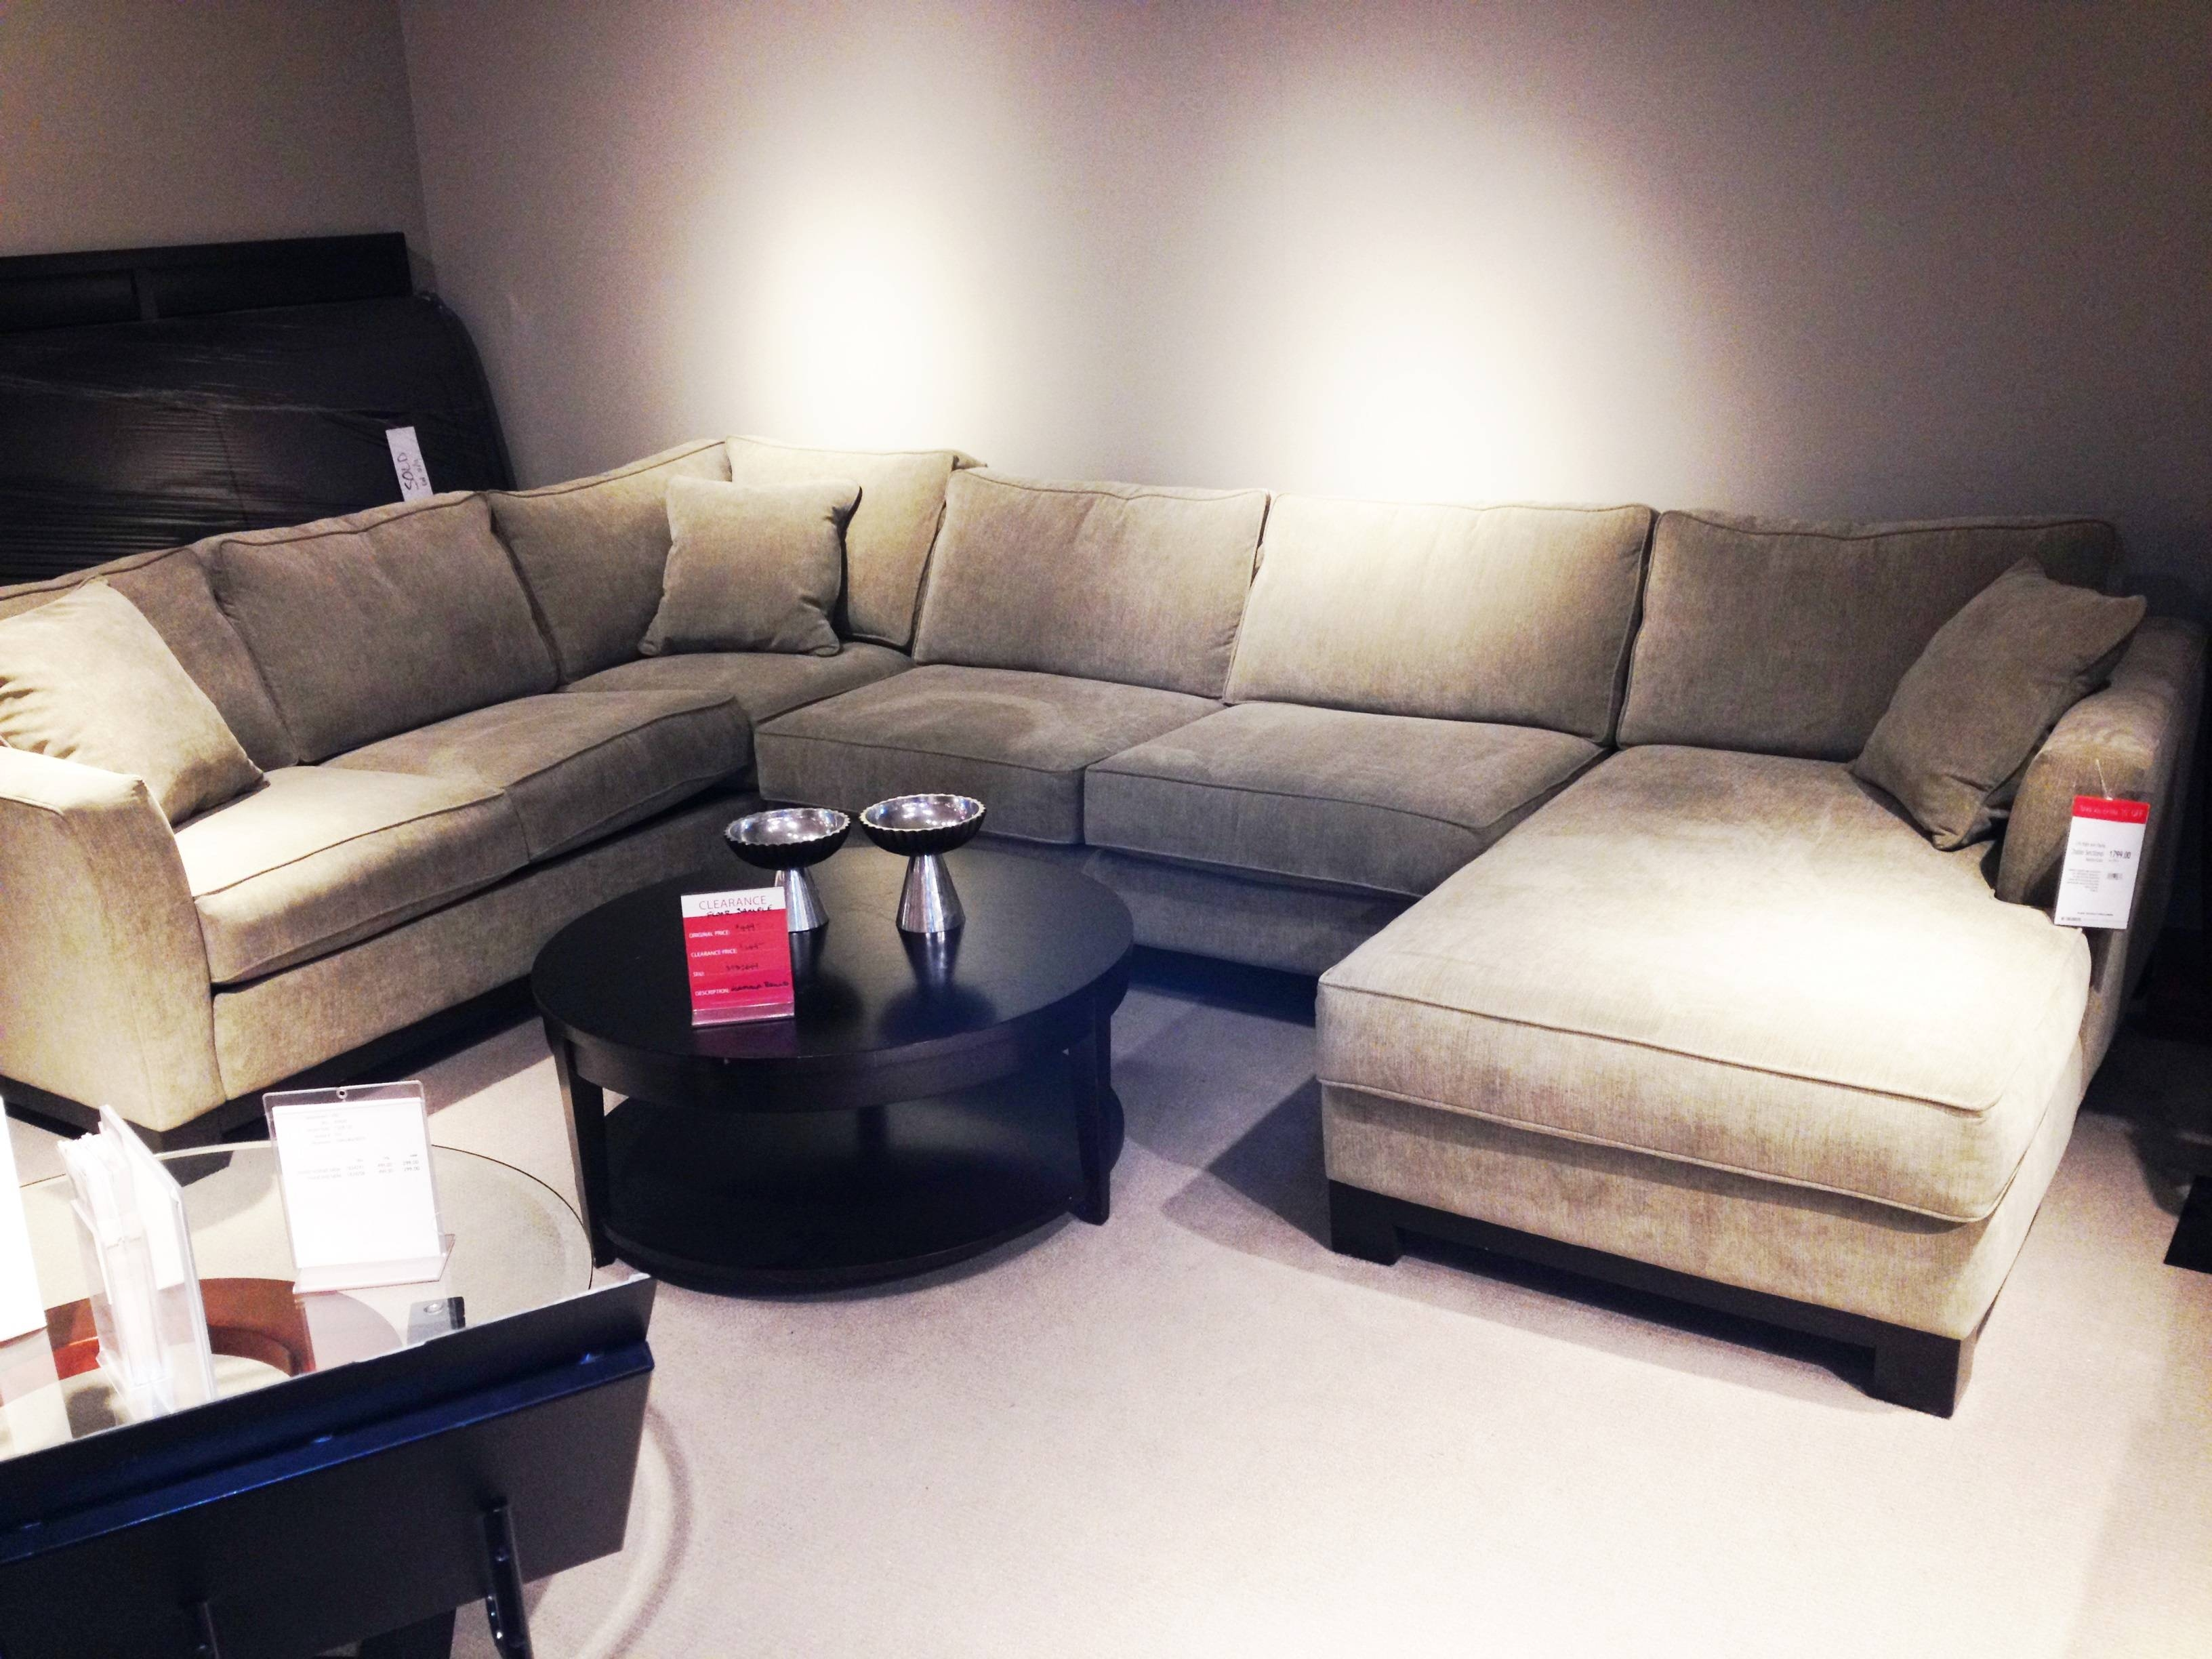 The Sectional Sofa Saga | Mid-Century Modern(Ization) with regard to Macys Leather Sofas Sectionals (Image 24 of 25)